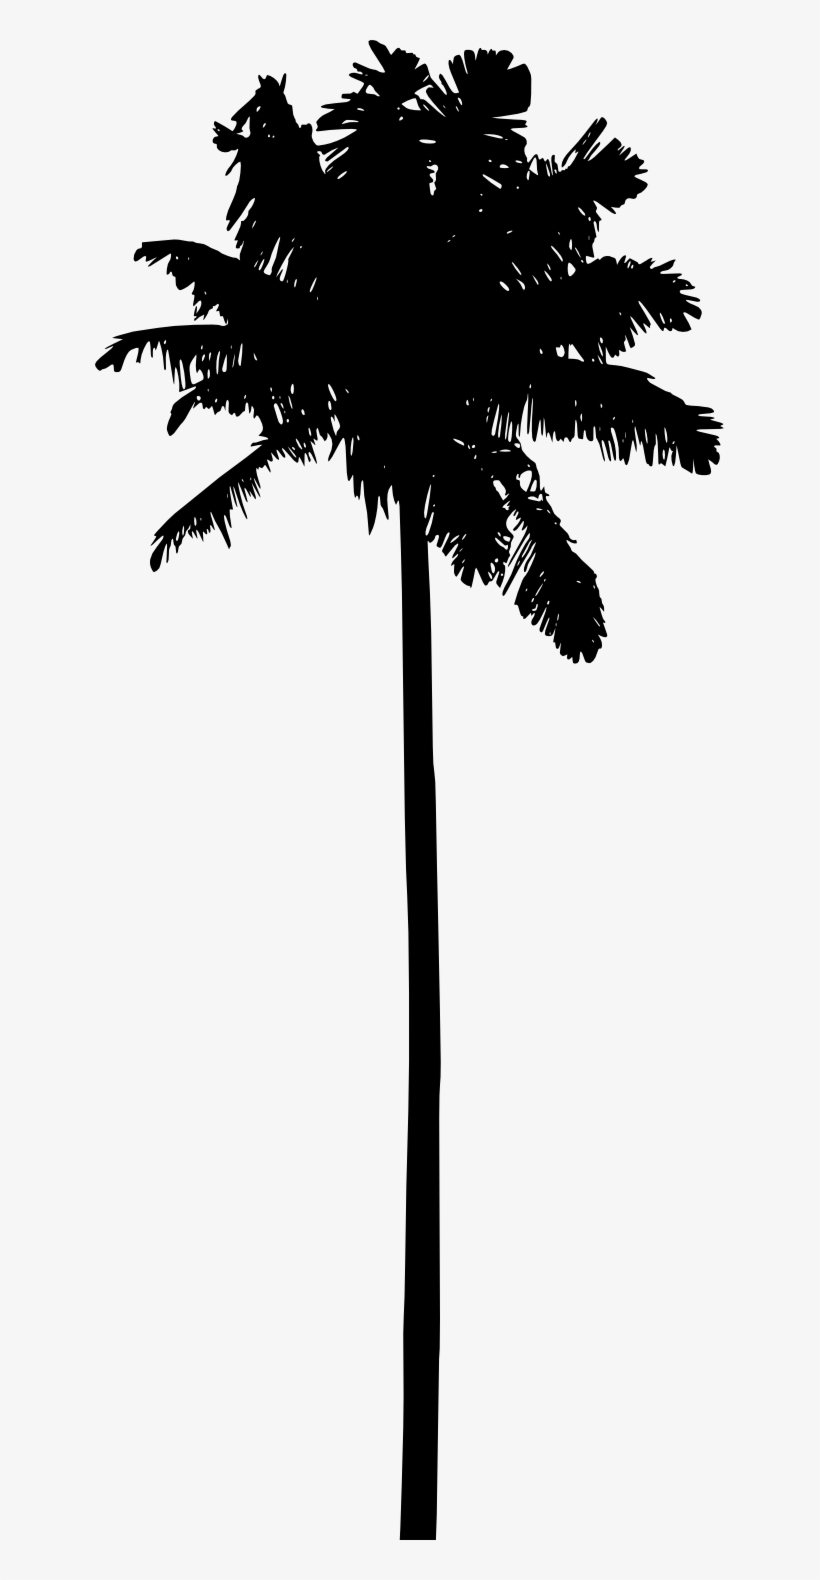 Free Png Palm Tree Silhouette Png Images Transparent - Palm Trees Silhouette Png, transparent png #124629